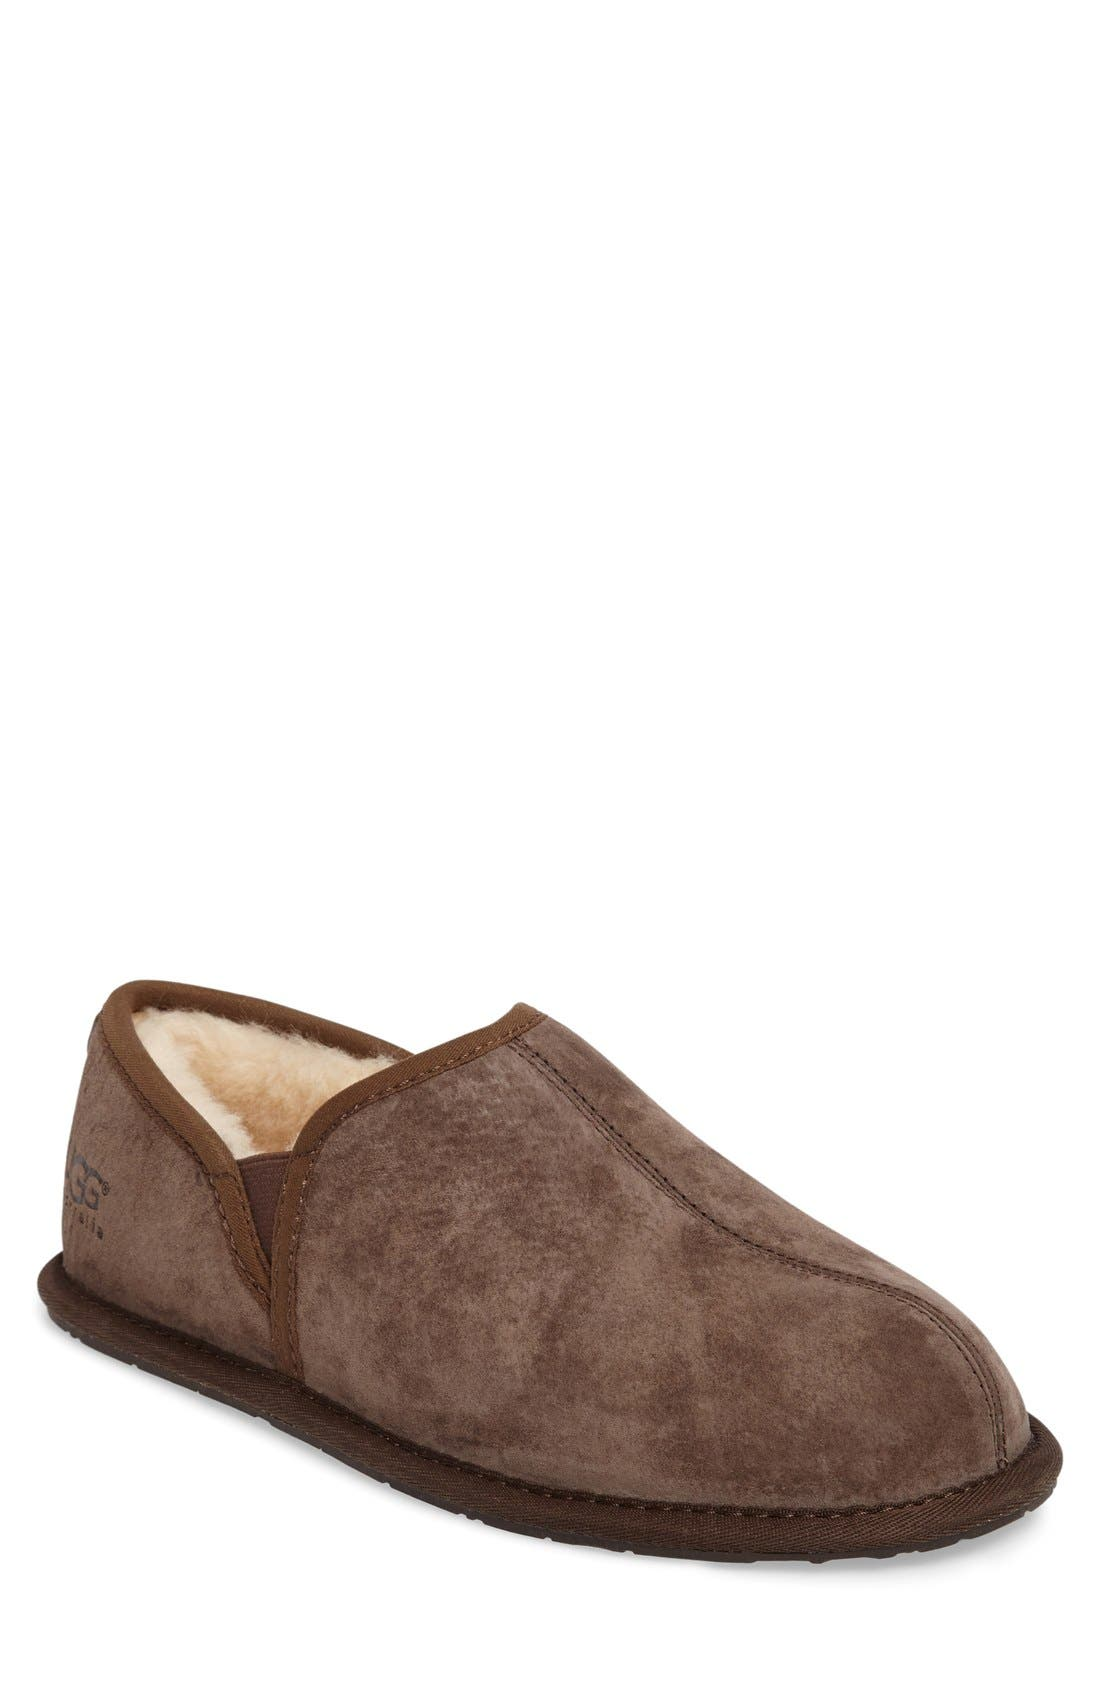 Alternate Image 1 Selected - UGG® 'Scuff Romeo II' Slipper (Men)